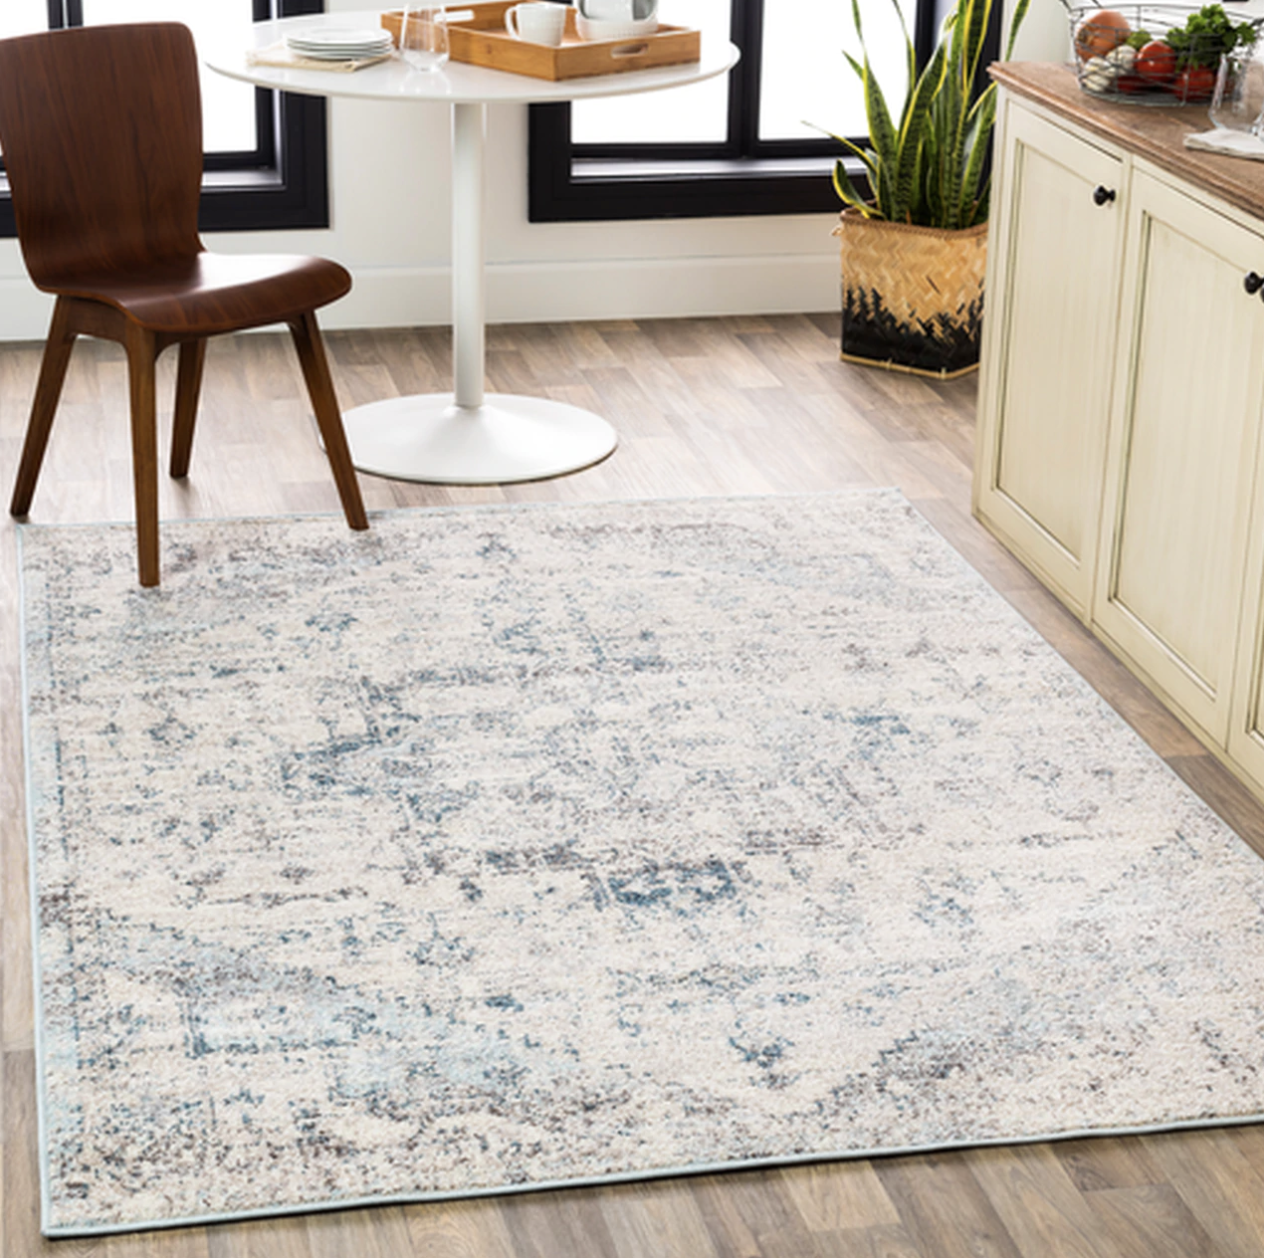 A square shaped white rug with a light blue diamond design and spots of blue and gray